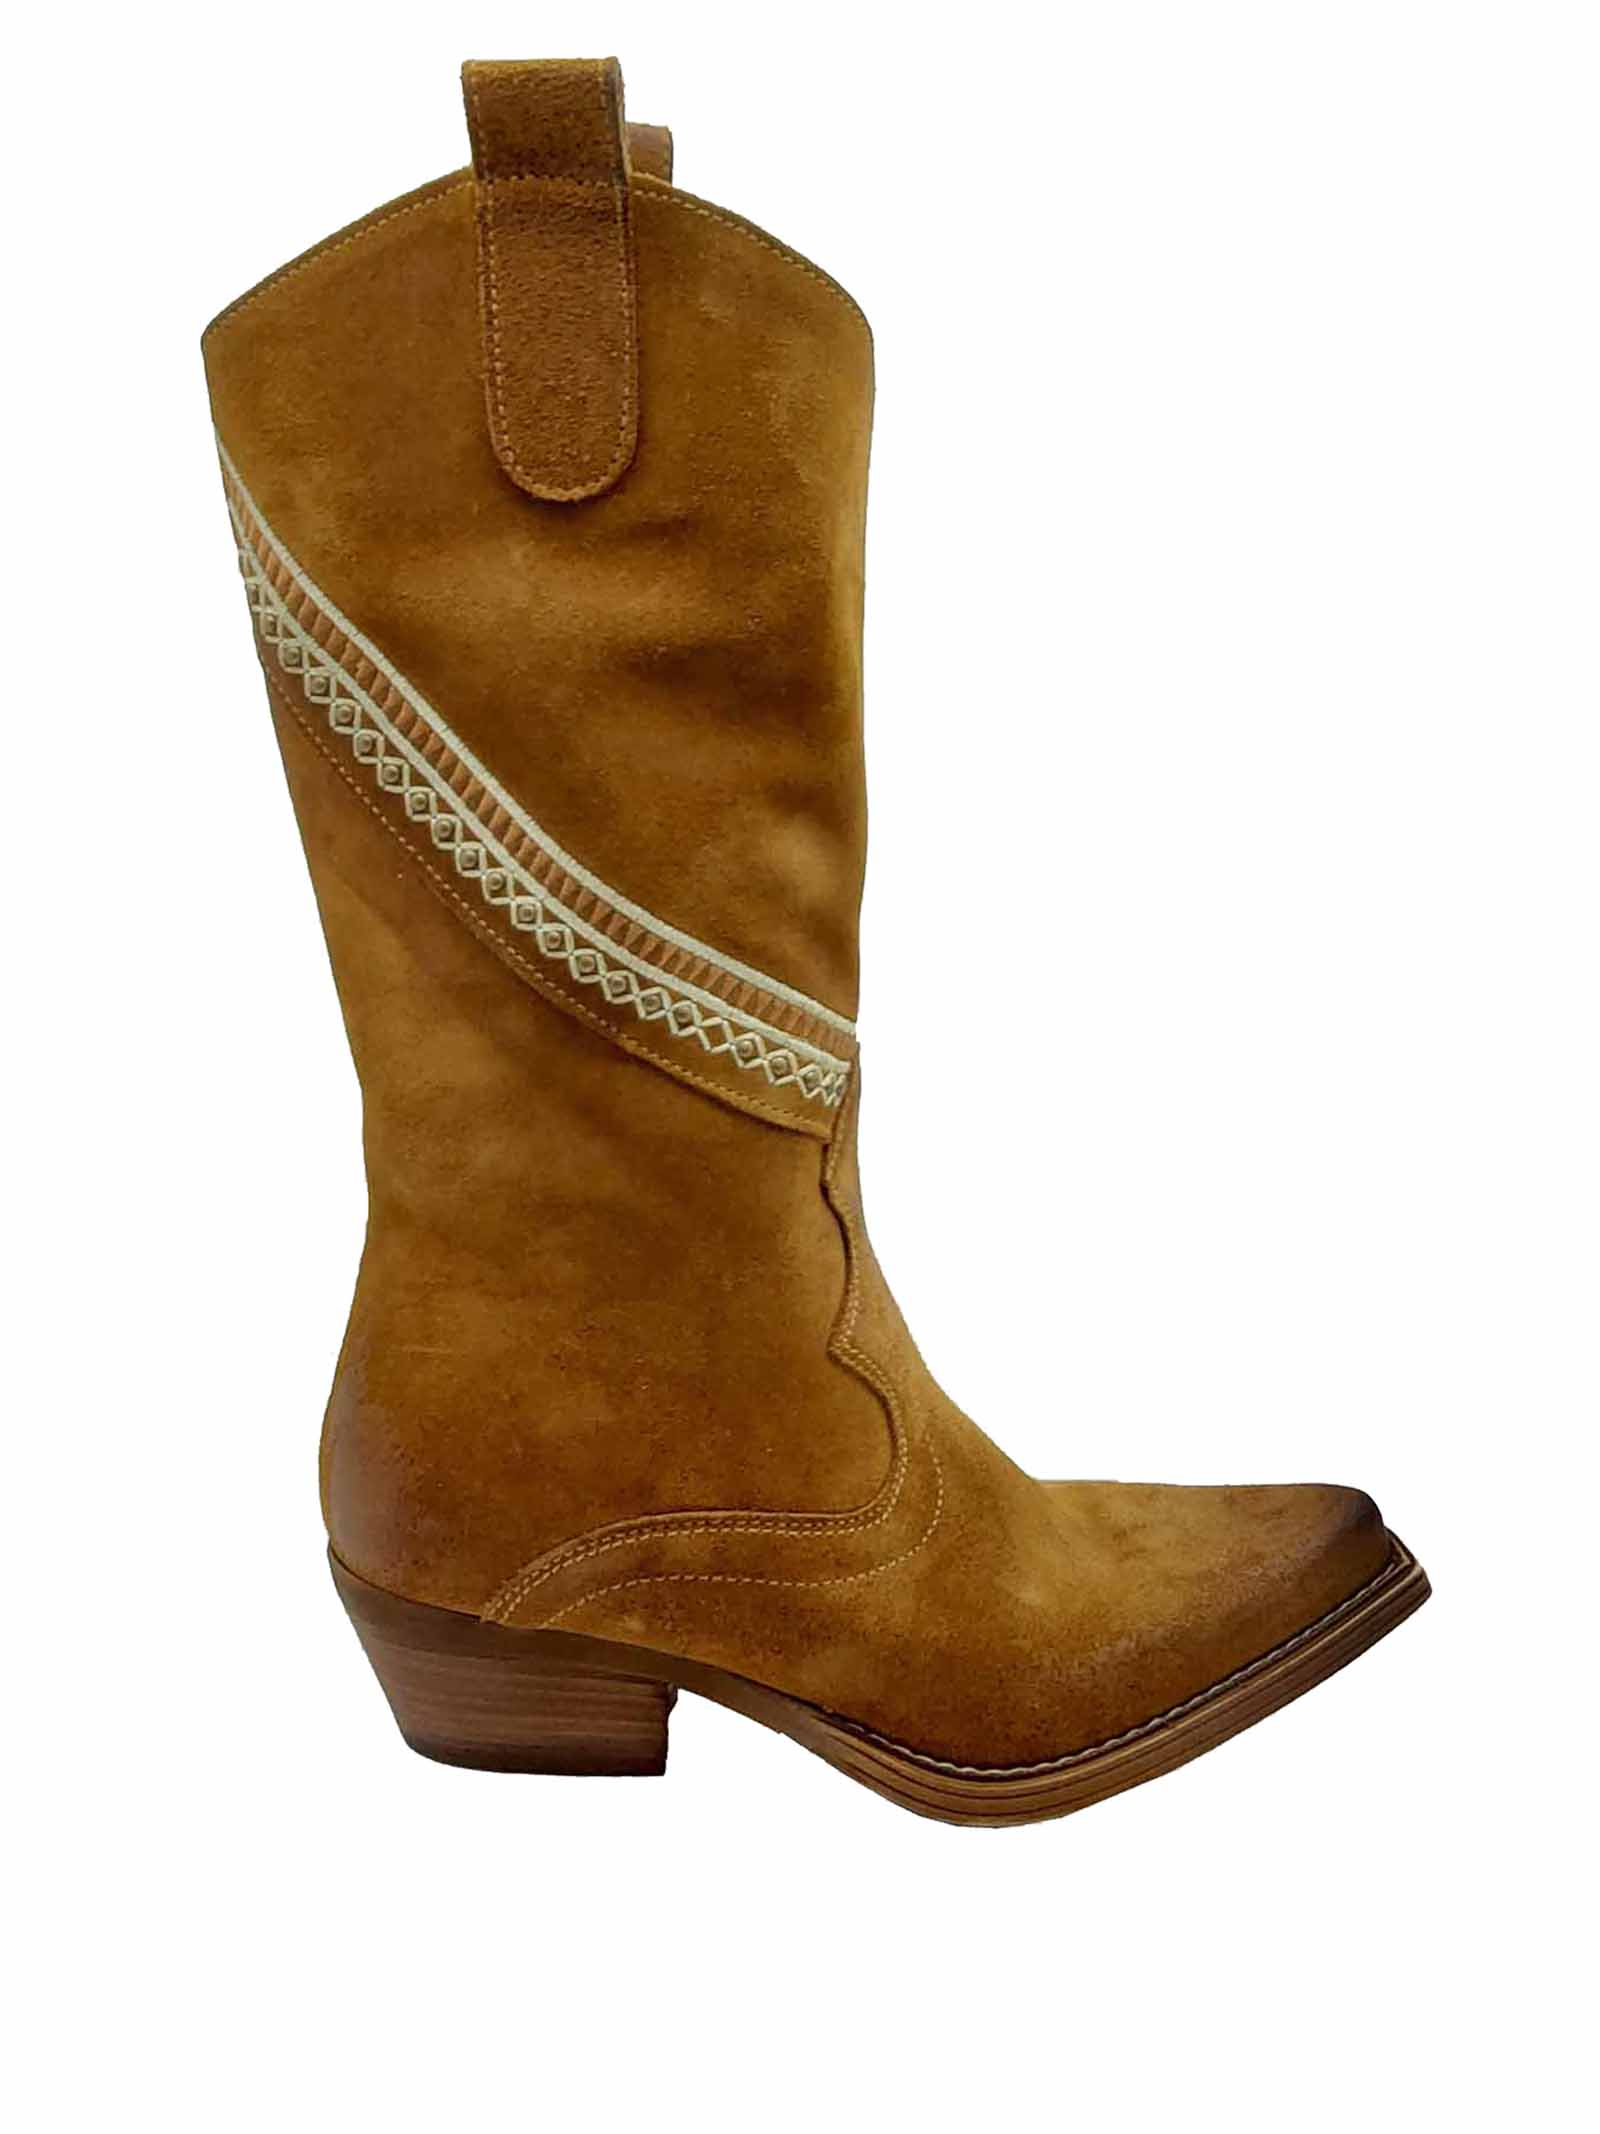 Women's Shoes Texan Boots in Leather Suede with Side Band and Heel and Bottom in Leather Zoe   Boots   APACHE03014